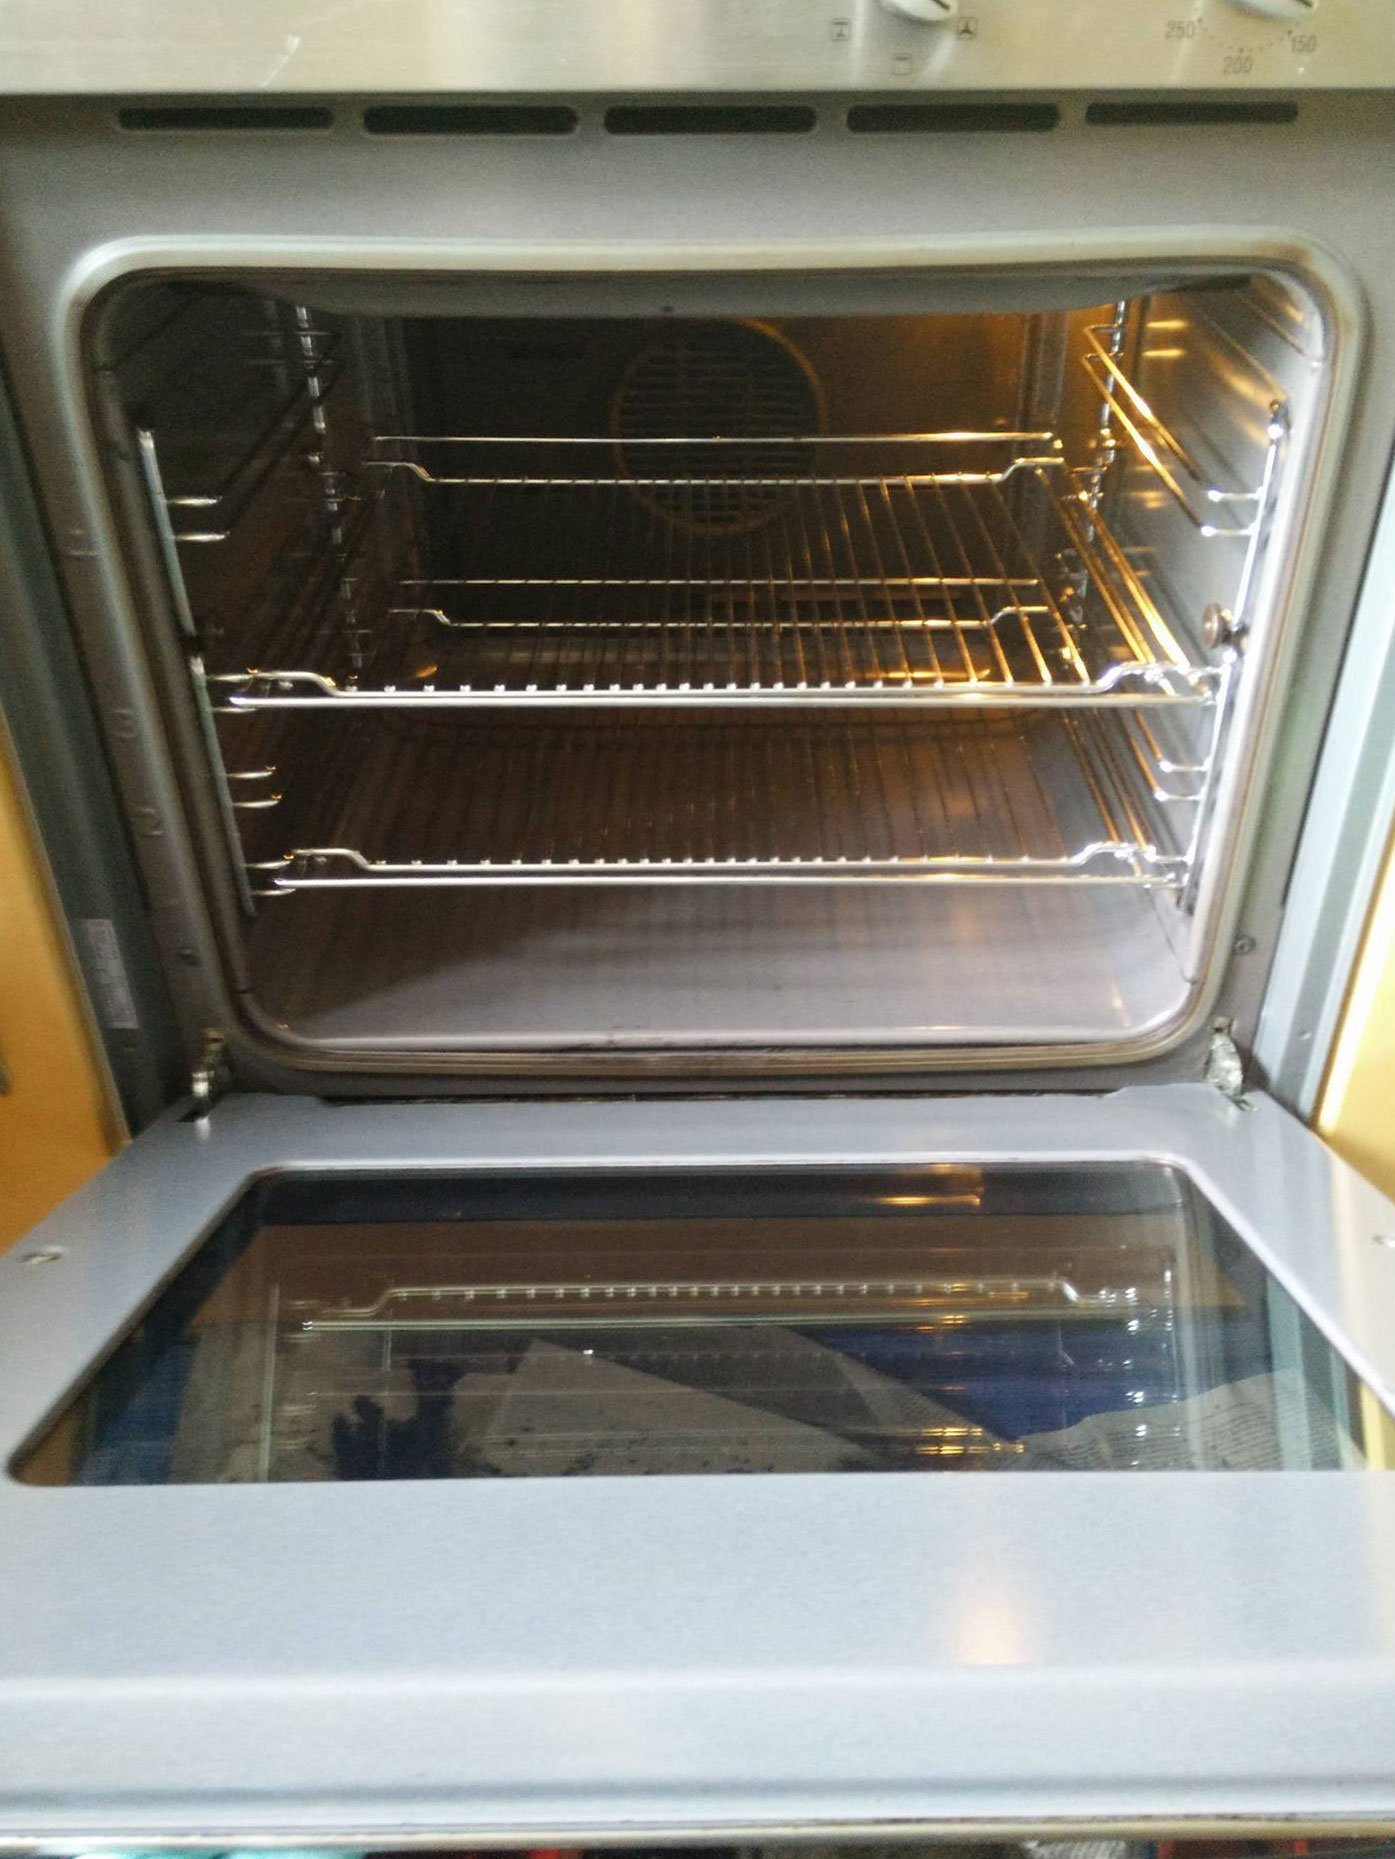 Helston-oven-cleaning-after